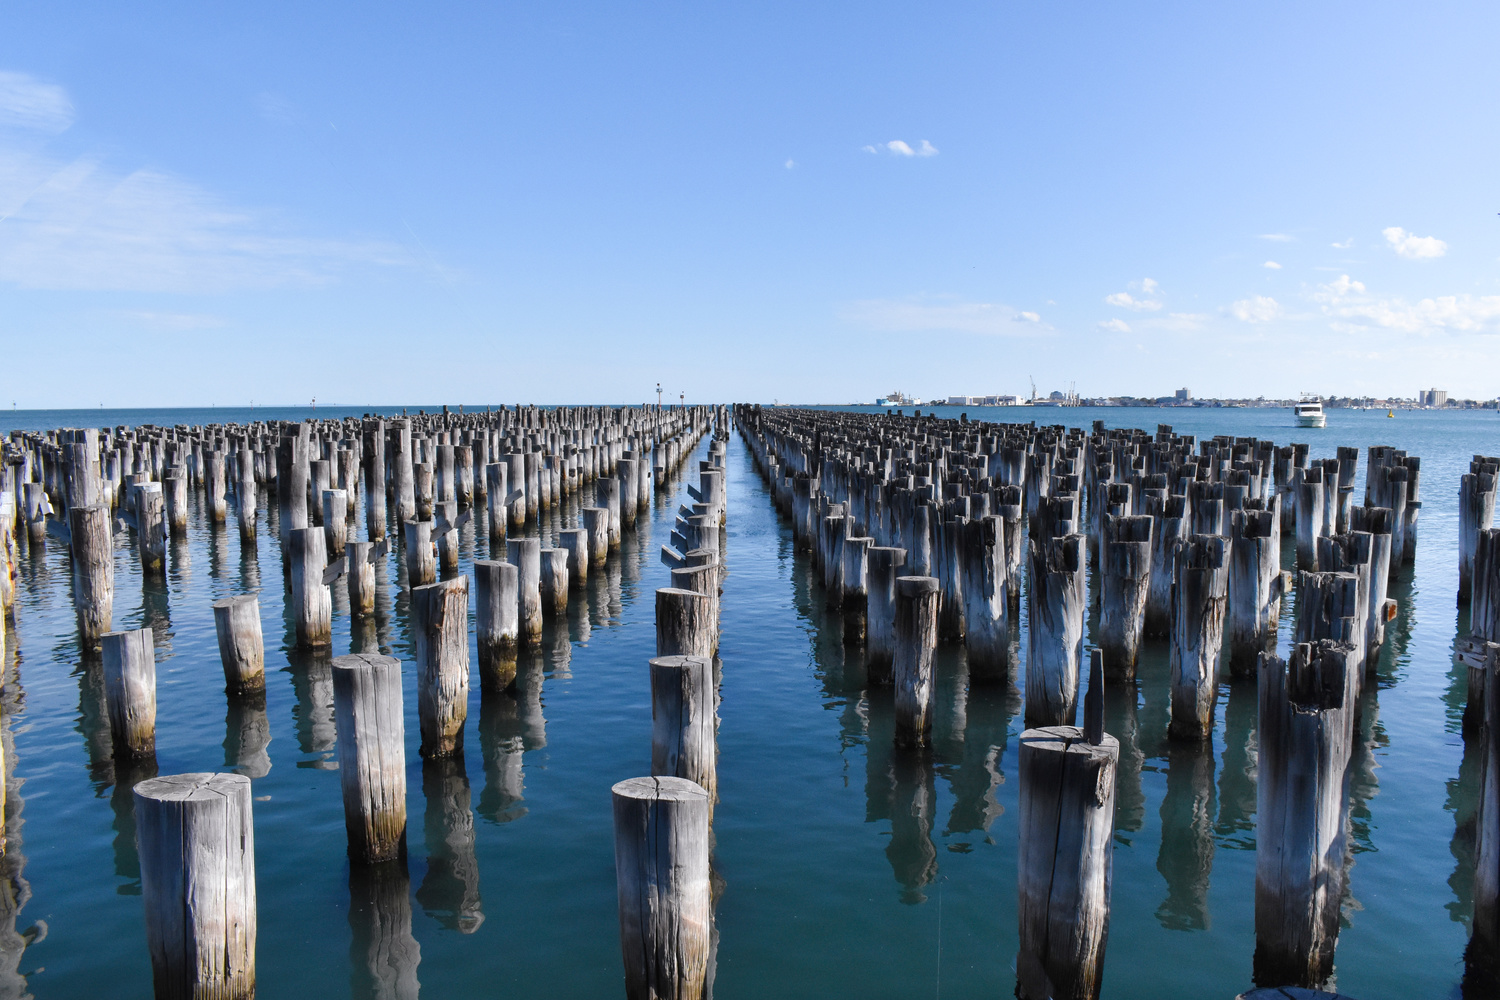 Remnants of a Pier, Melbourne by Marian Pollock